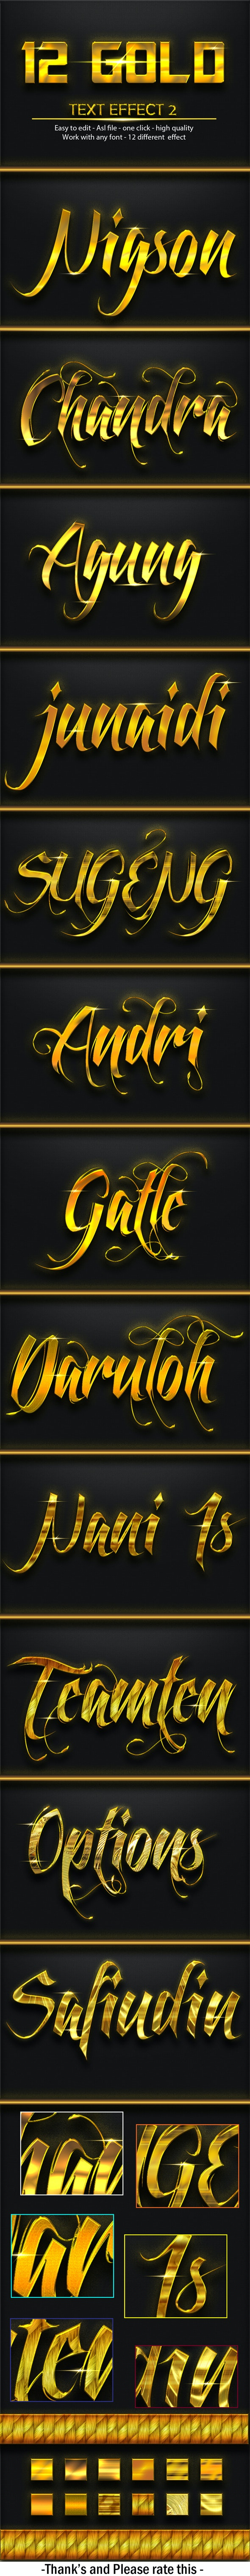 12 Gold Effect 2 - Text Effects Styles